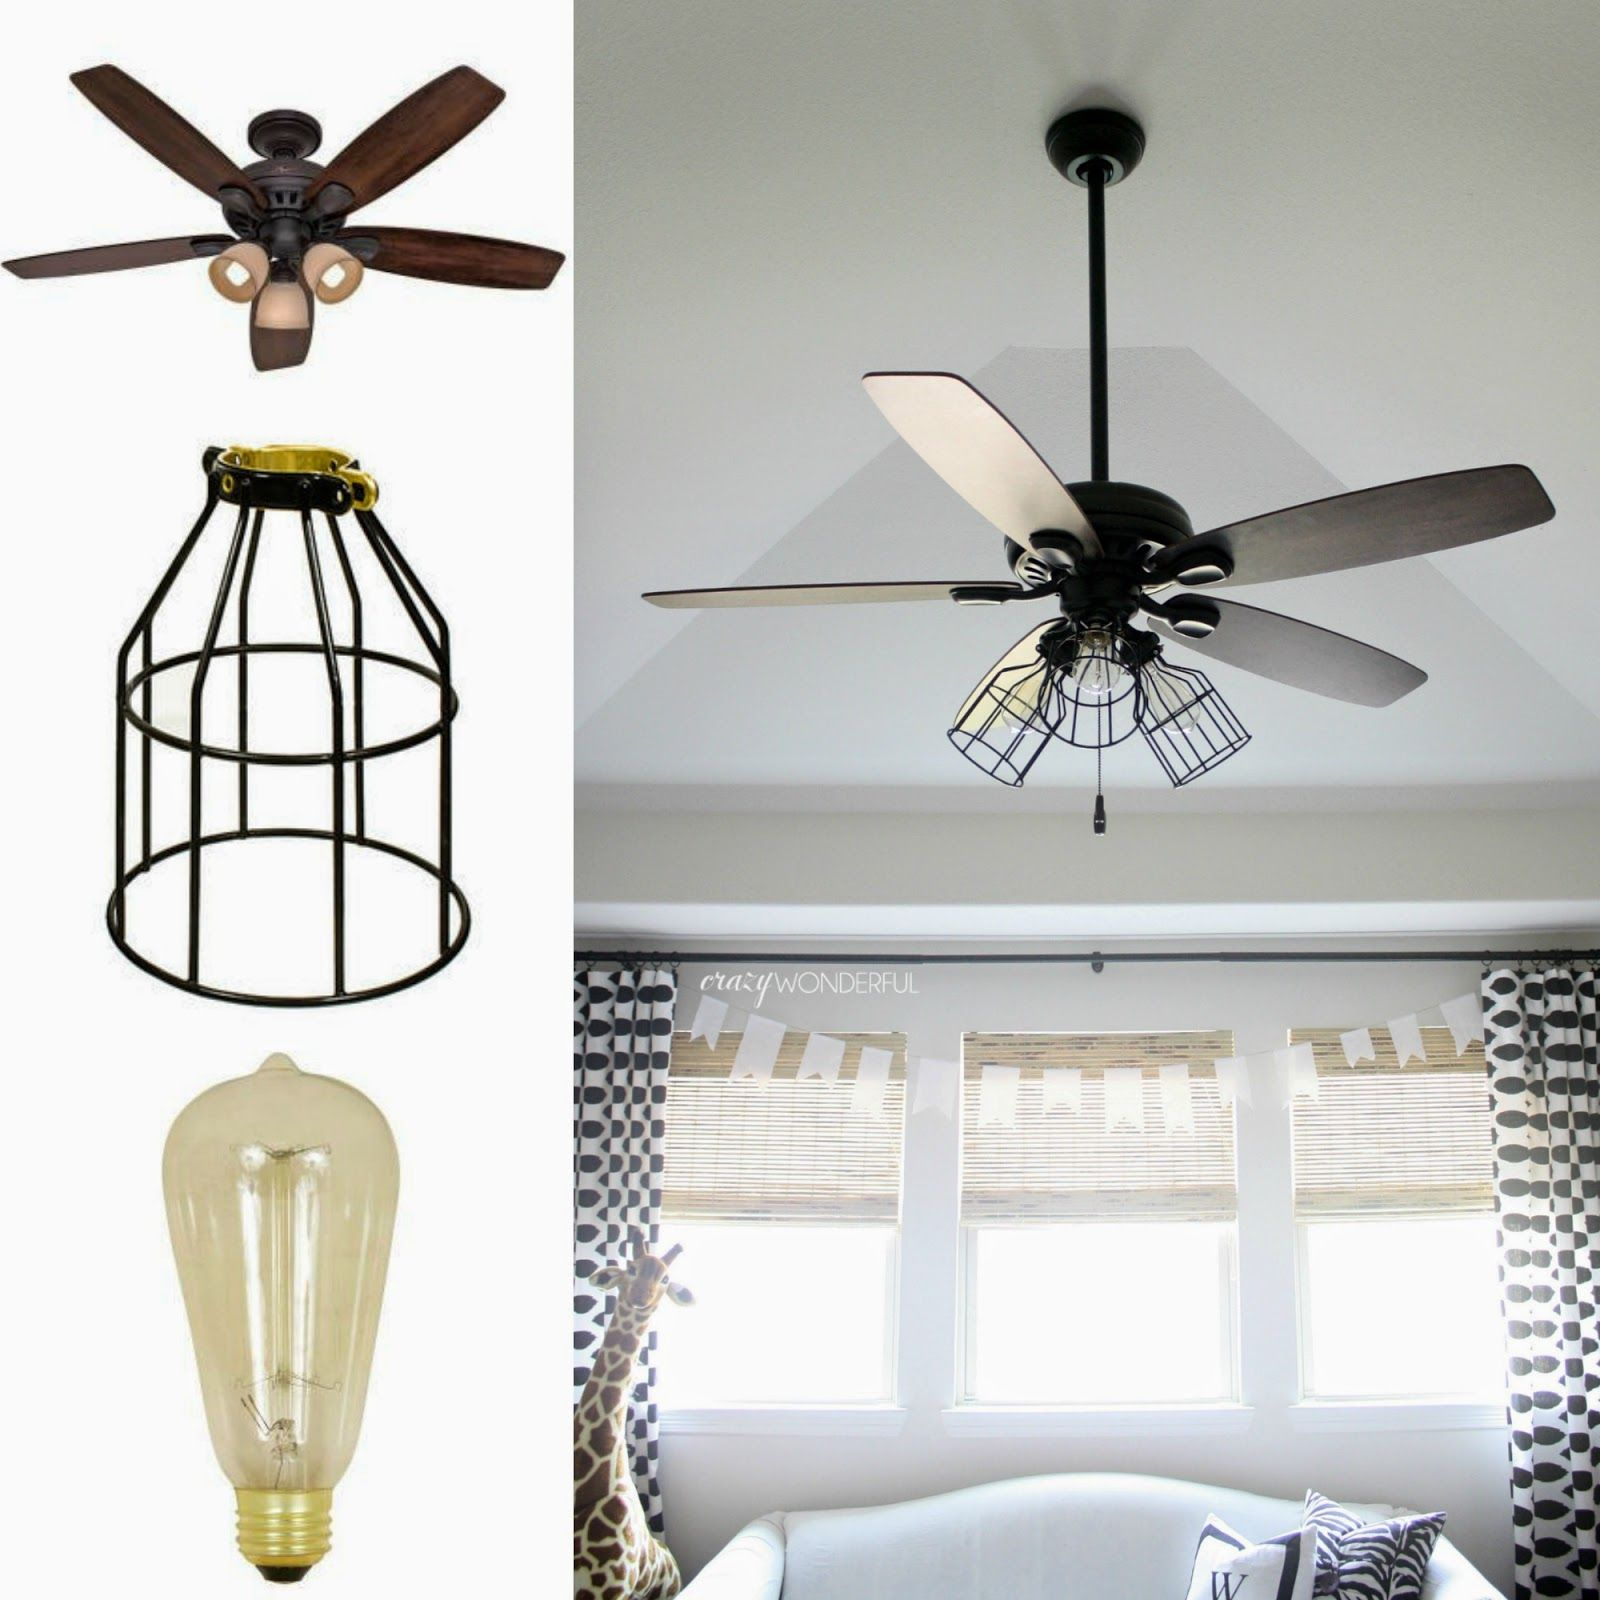 Crazy Wonderful DIY Cage Light Ceiling Fan Crazy Wonderful Blog - Kitchen fan light fixtures